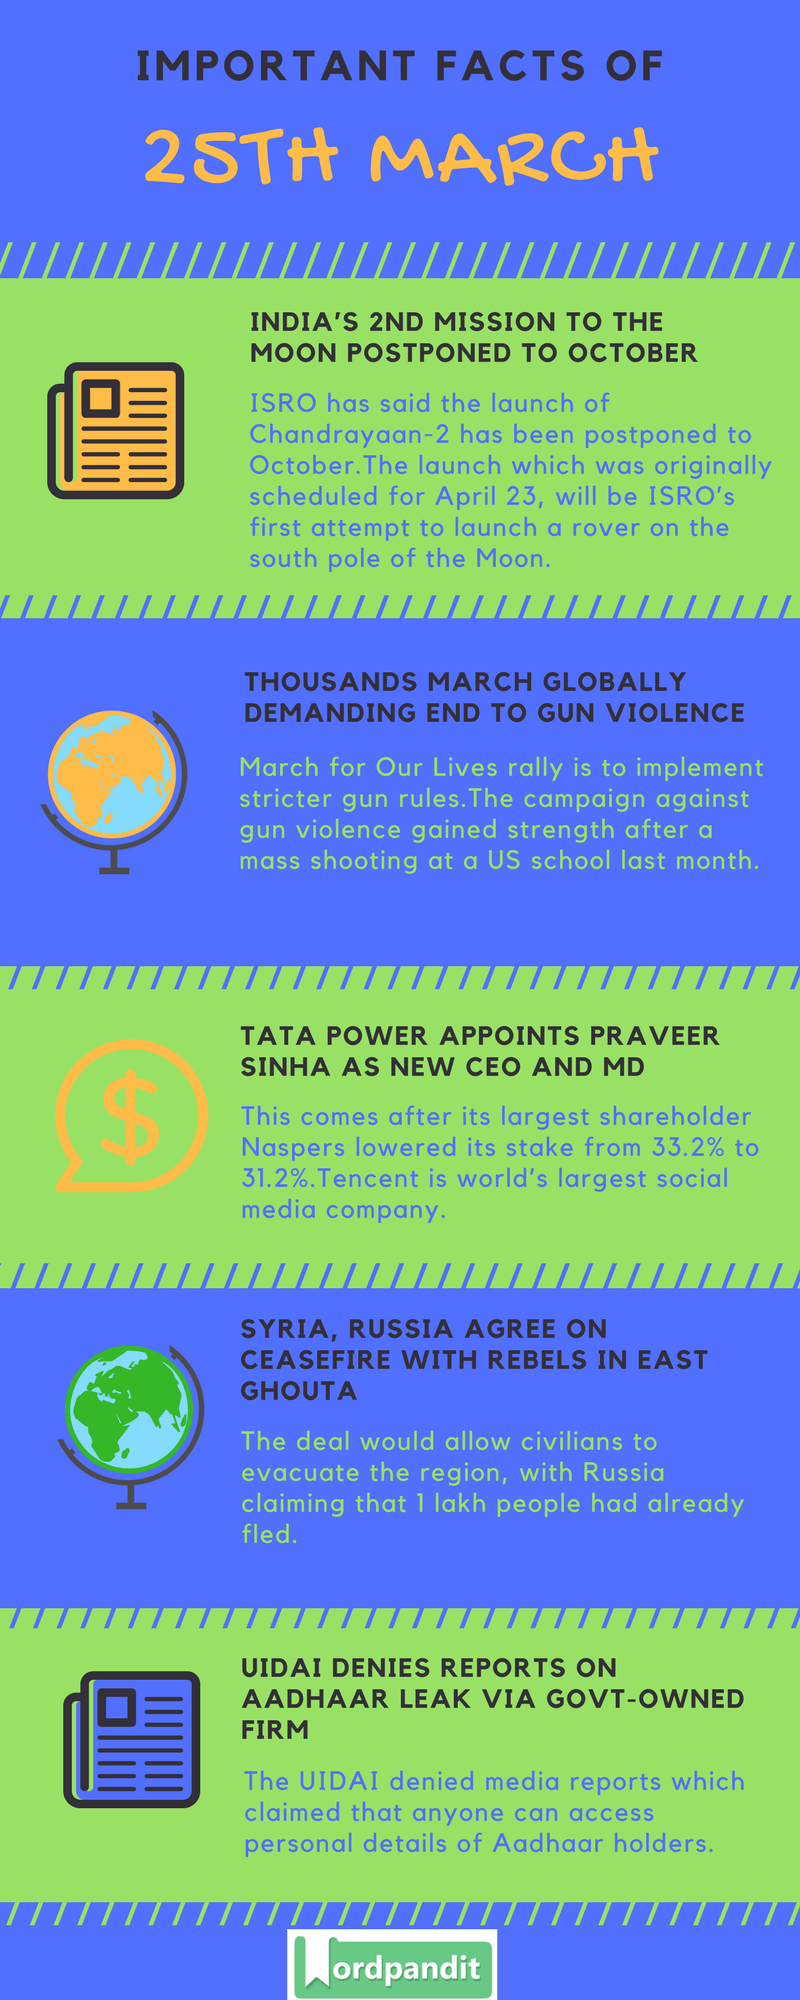 Daily Current Affairs 25 March 2018 Current Affairs Quiz March 25 2018 Current Affairs Infographic